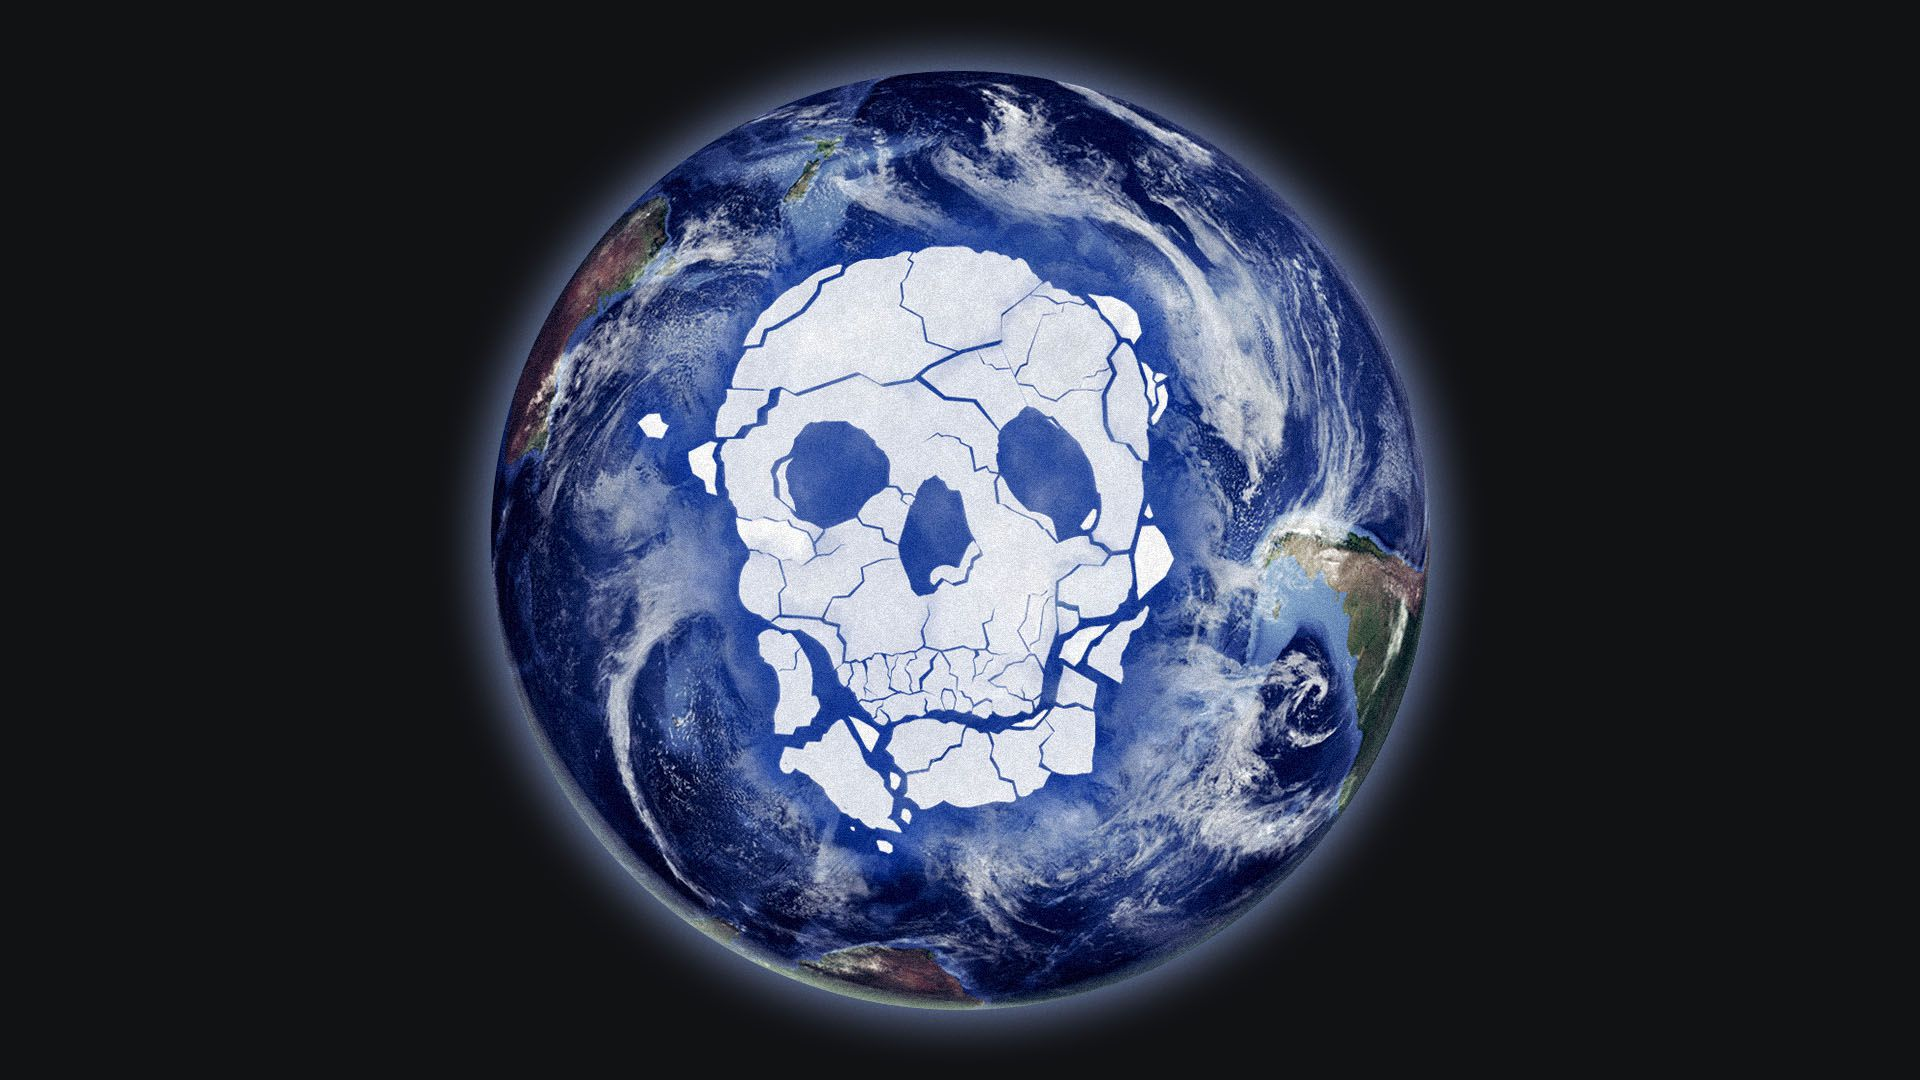 Illustration of the Antarctic ice melted into the shape of a skull.